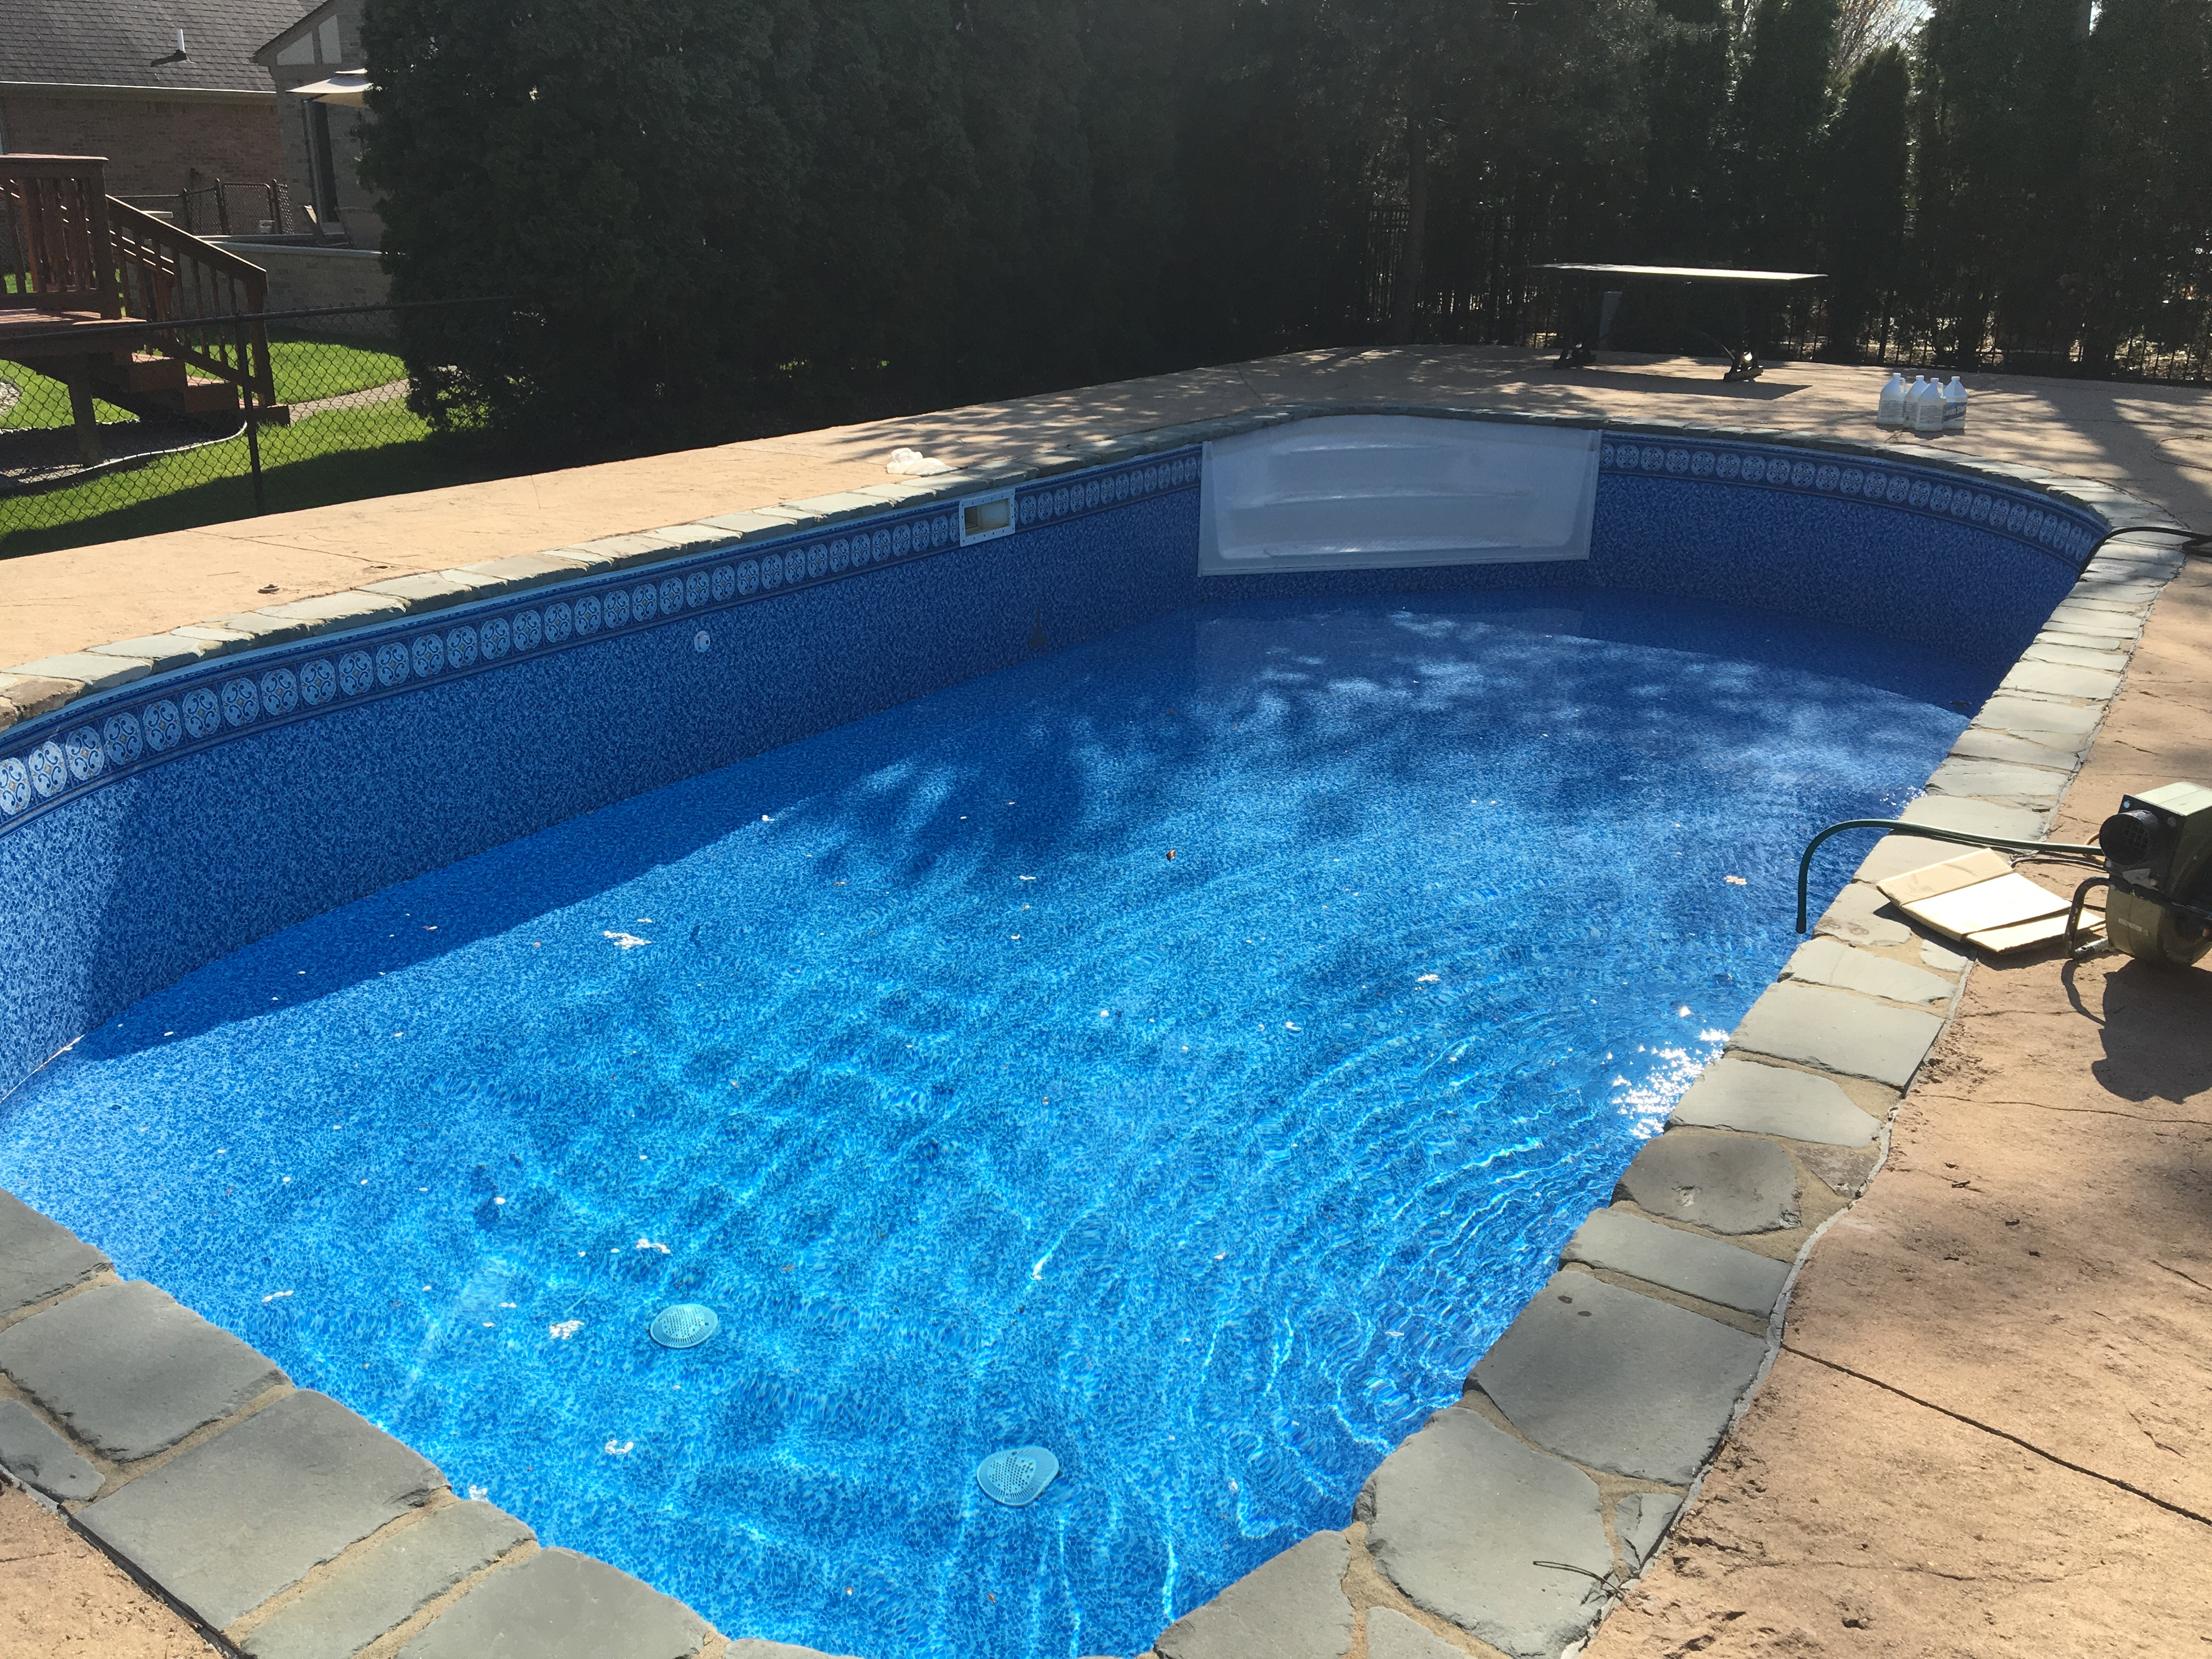 Tru tile by latham industries in vinyl and hybrid pools for Vinyl swimming pool